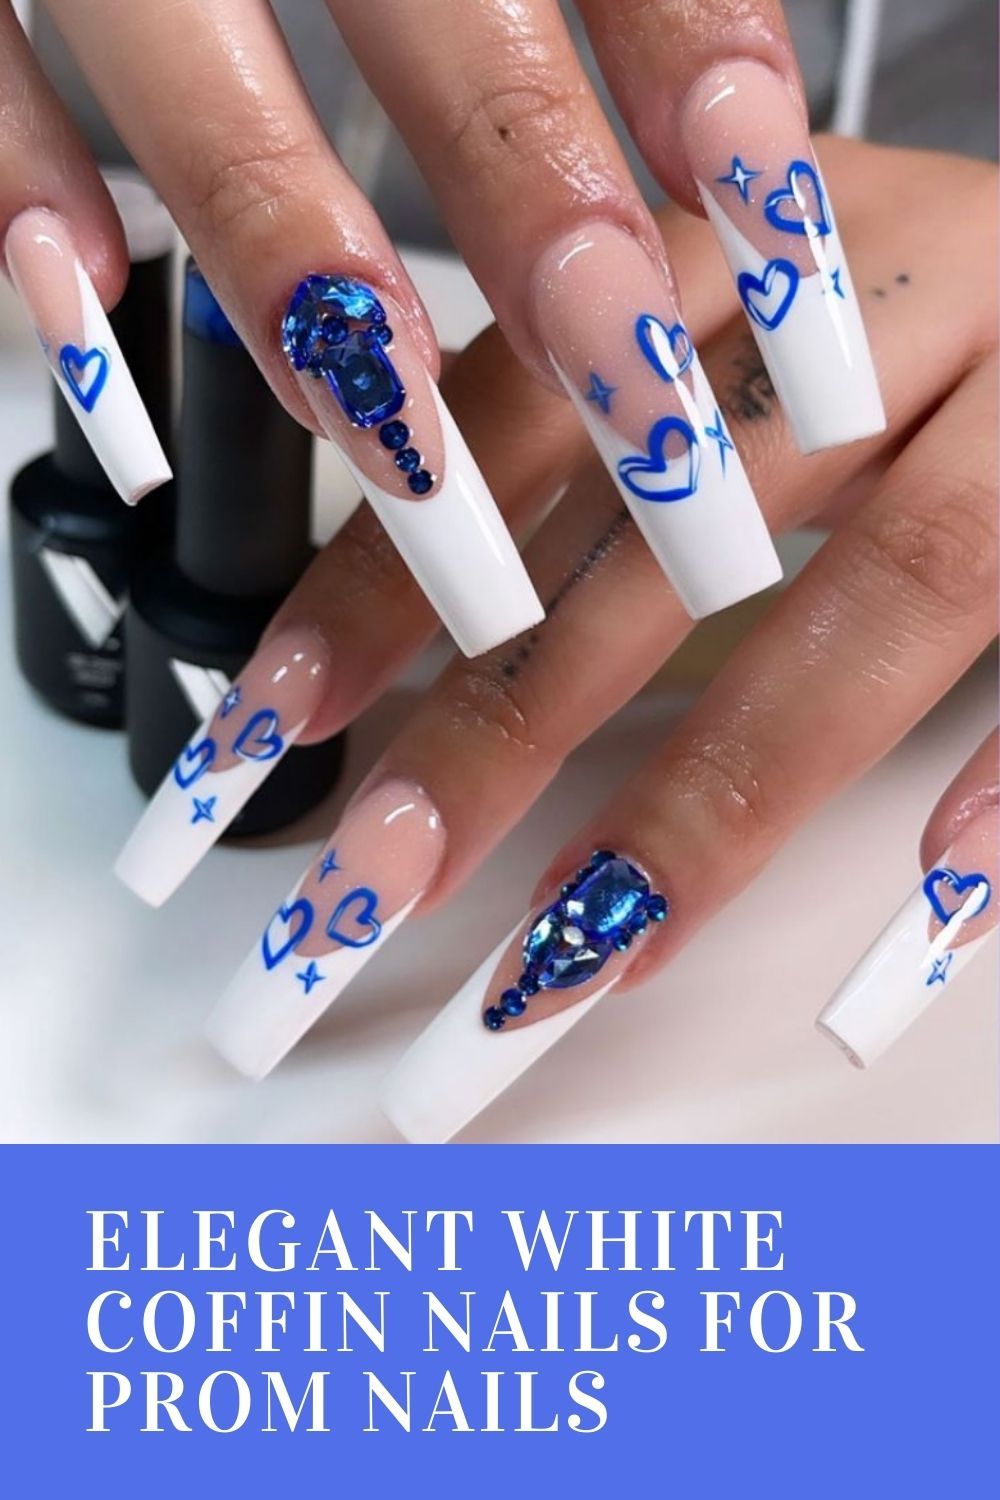 40 Acrylic White Coffin Nails For Prom Nail Design 2021!